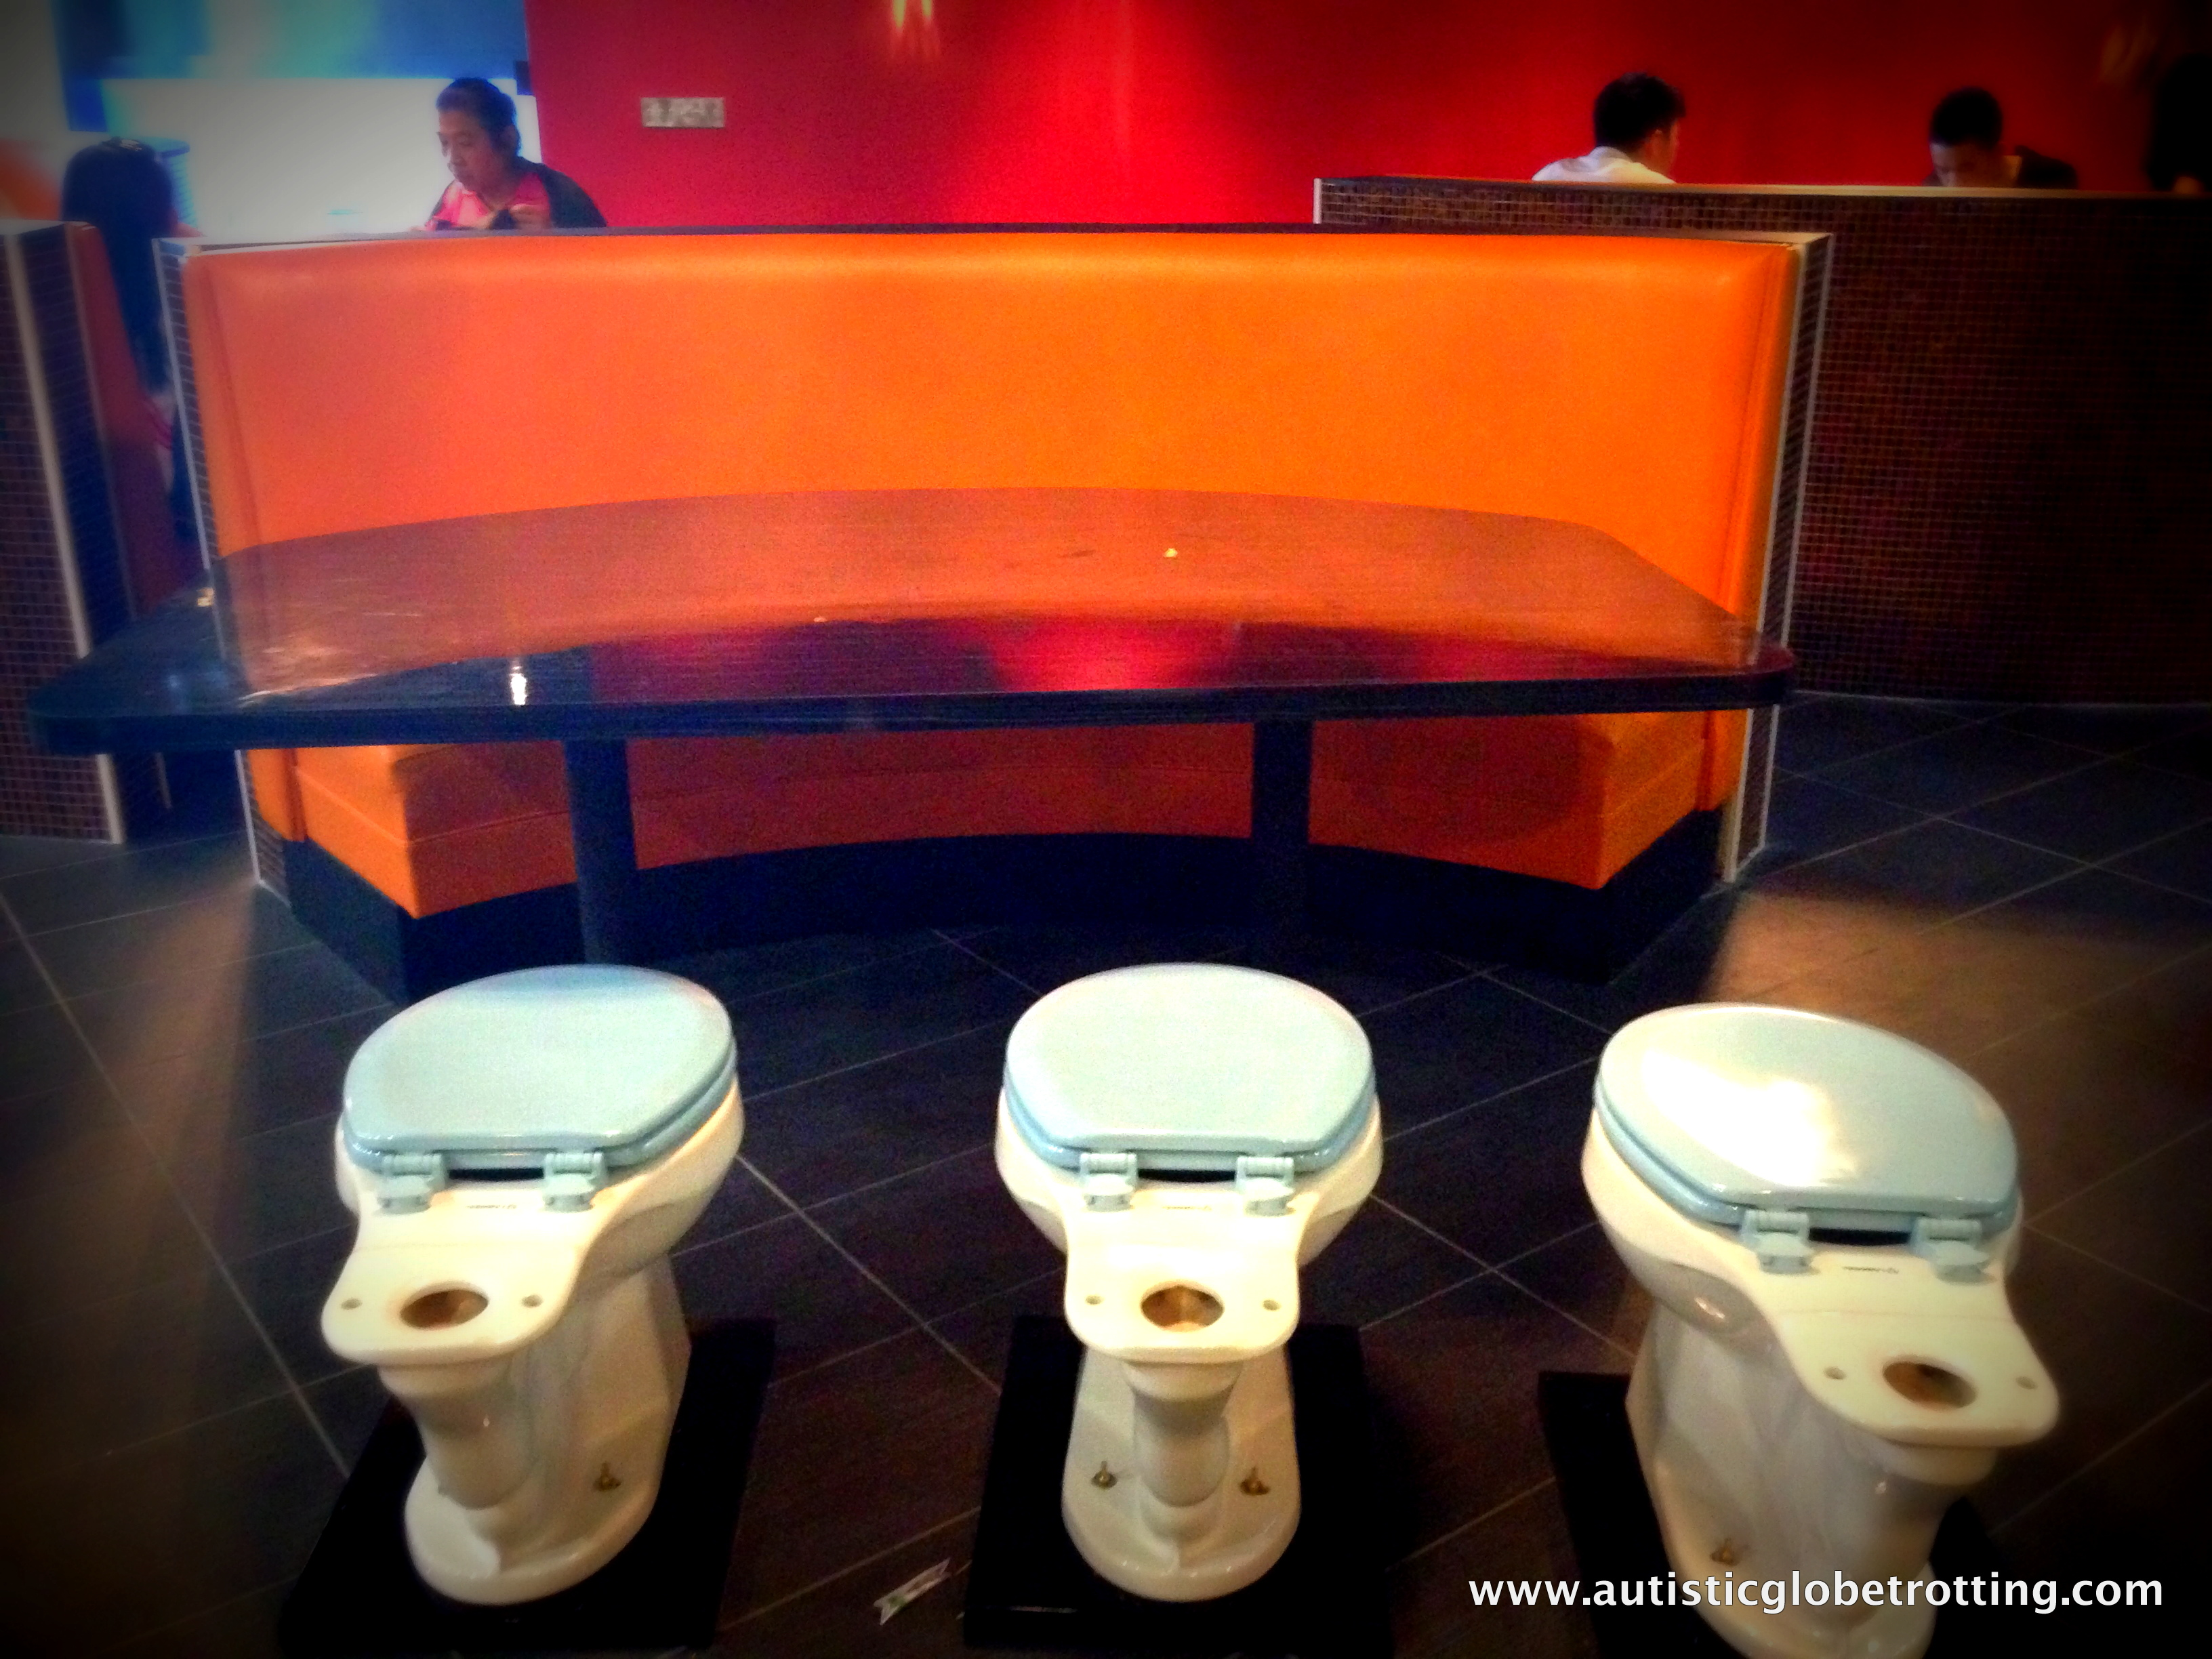 Dining on the Potty-L.A's Newest Restaurant Fad